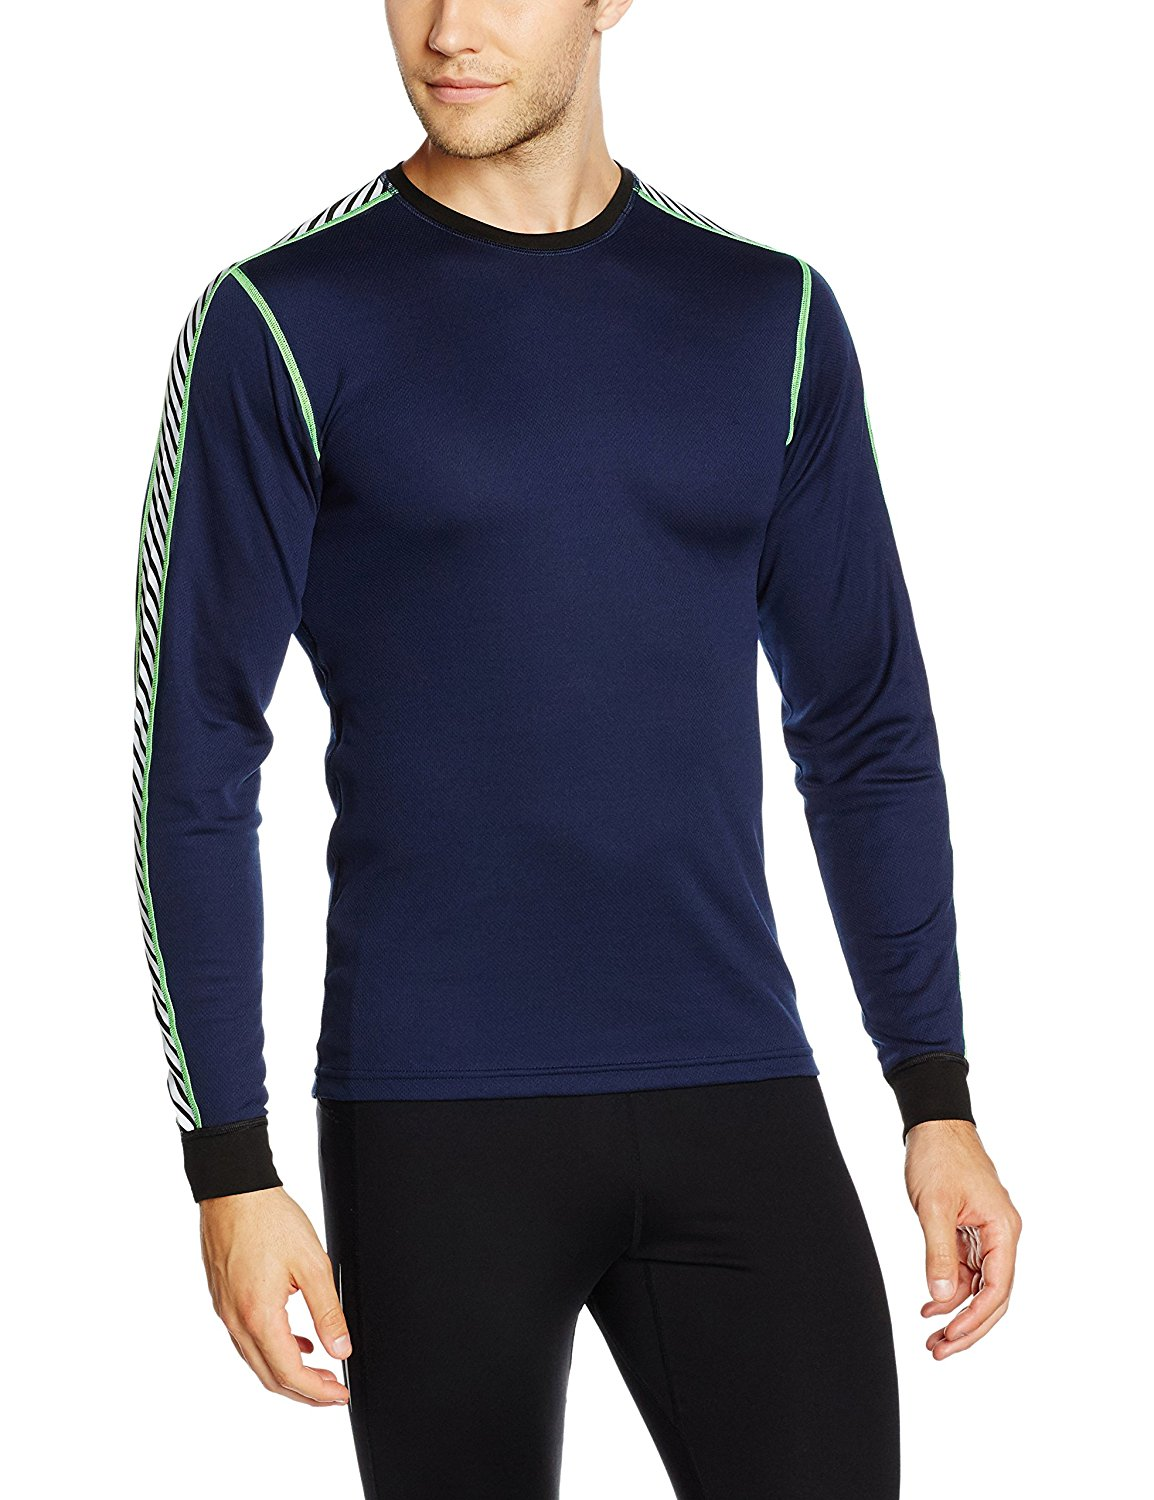 cc298482397 Get Quotations · Helly Hansen HH Dry Stripe Crew Neck Running And Outdoor  Top - AW16